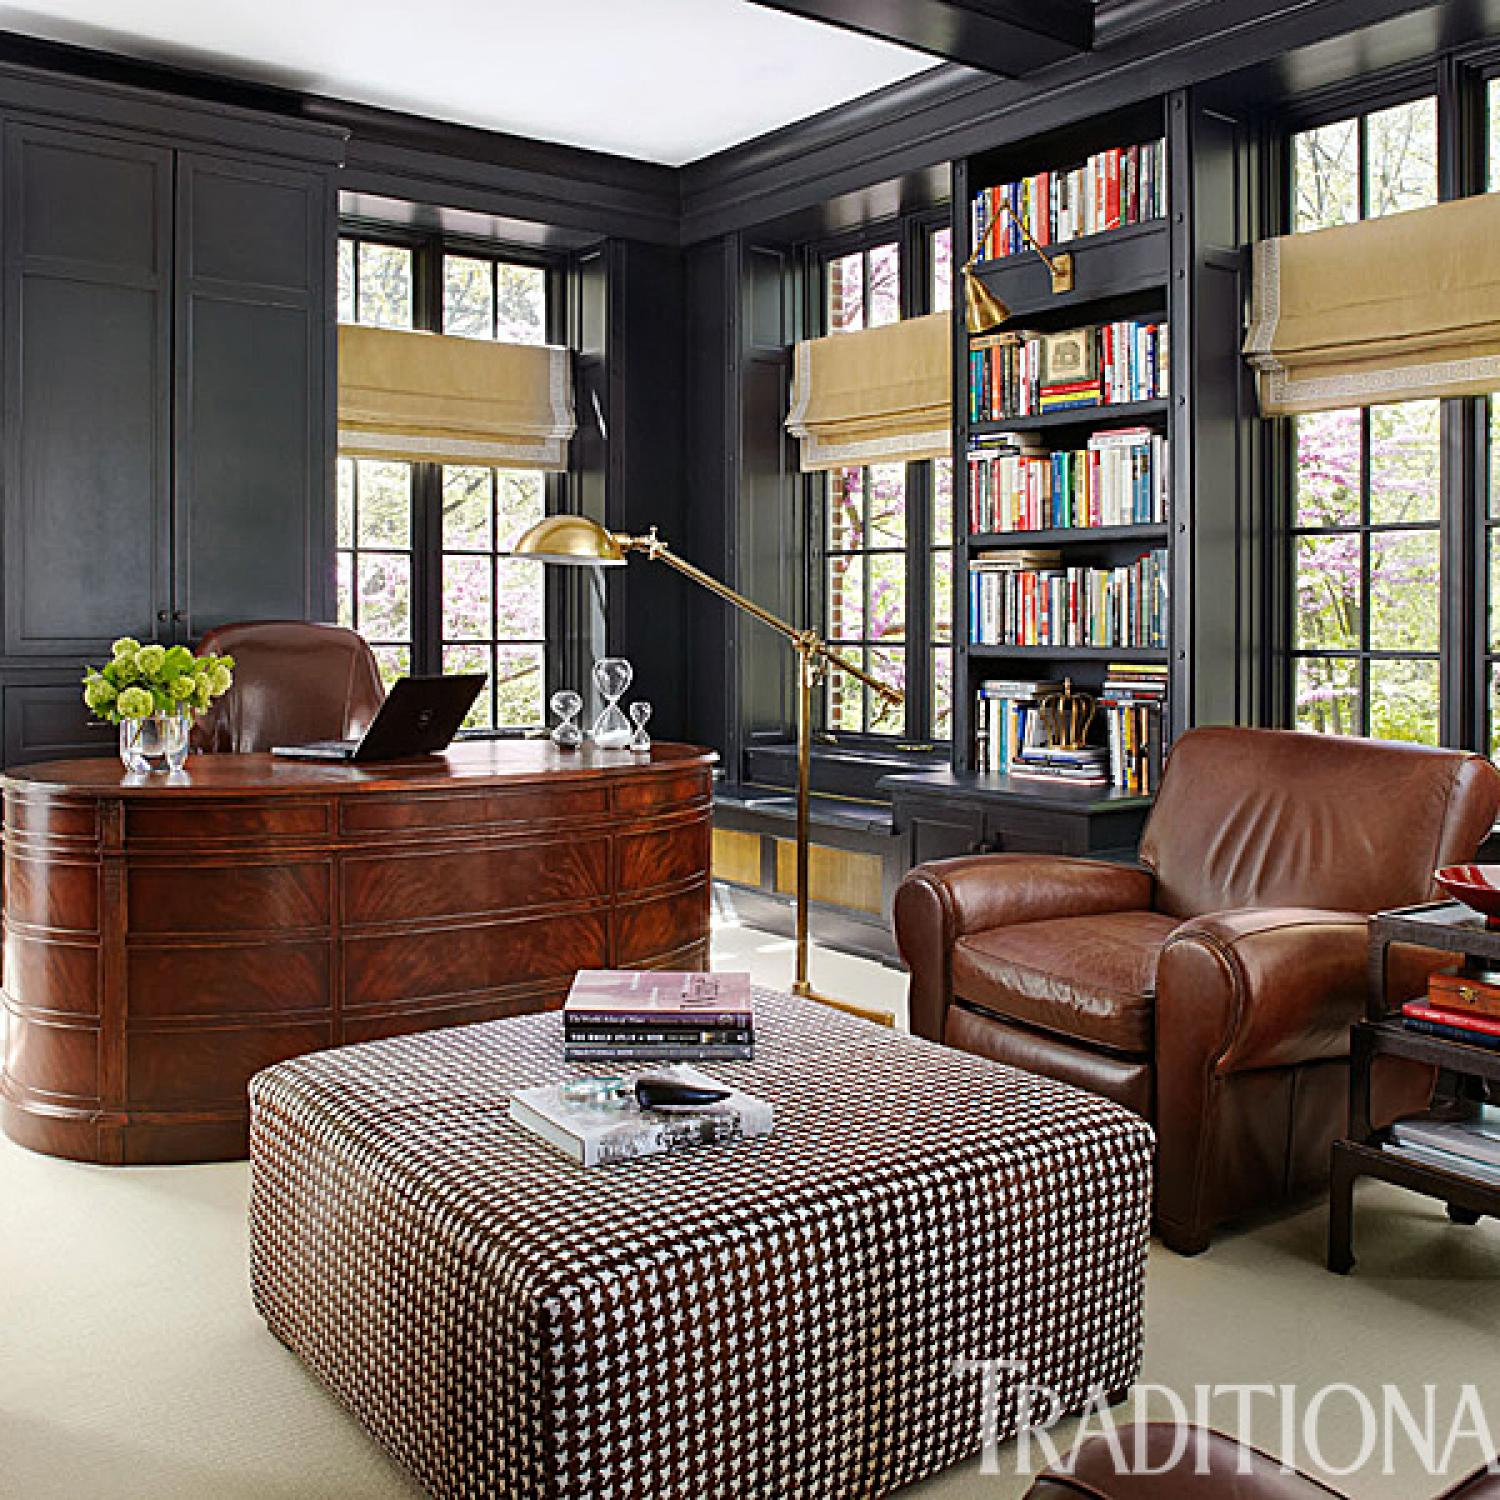 Handsome Rooms with a Masculine Vibe